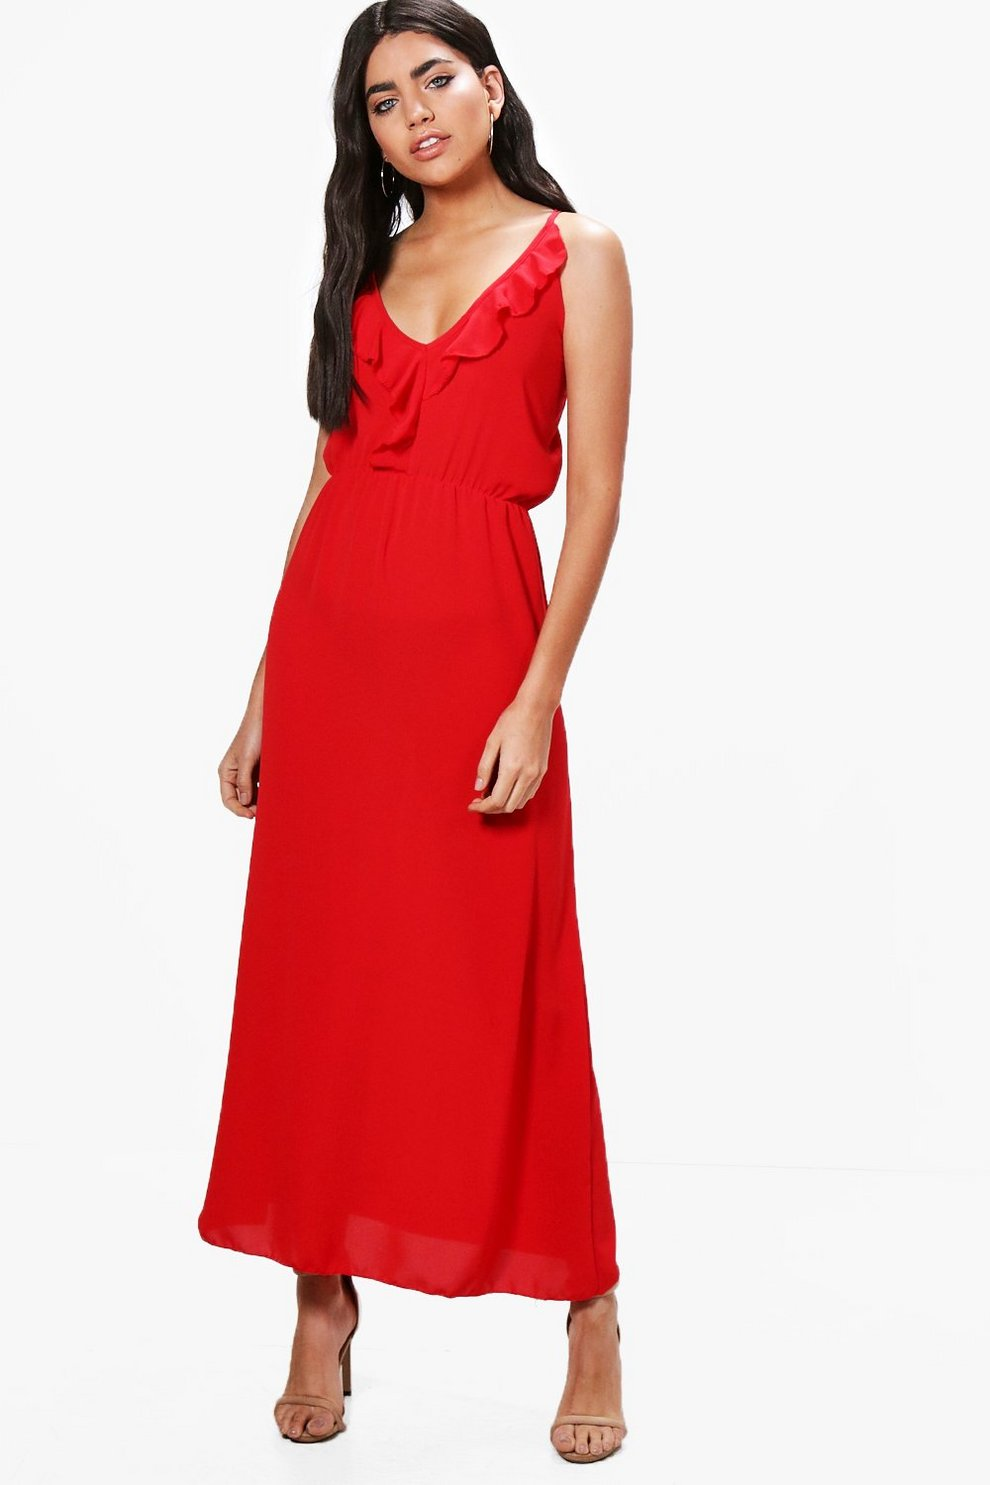 Boohoo Ruffle Wrap Front Maxi Dress Buy Cheap Manchester Shop Your Own Discount Excellent xCG9c